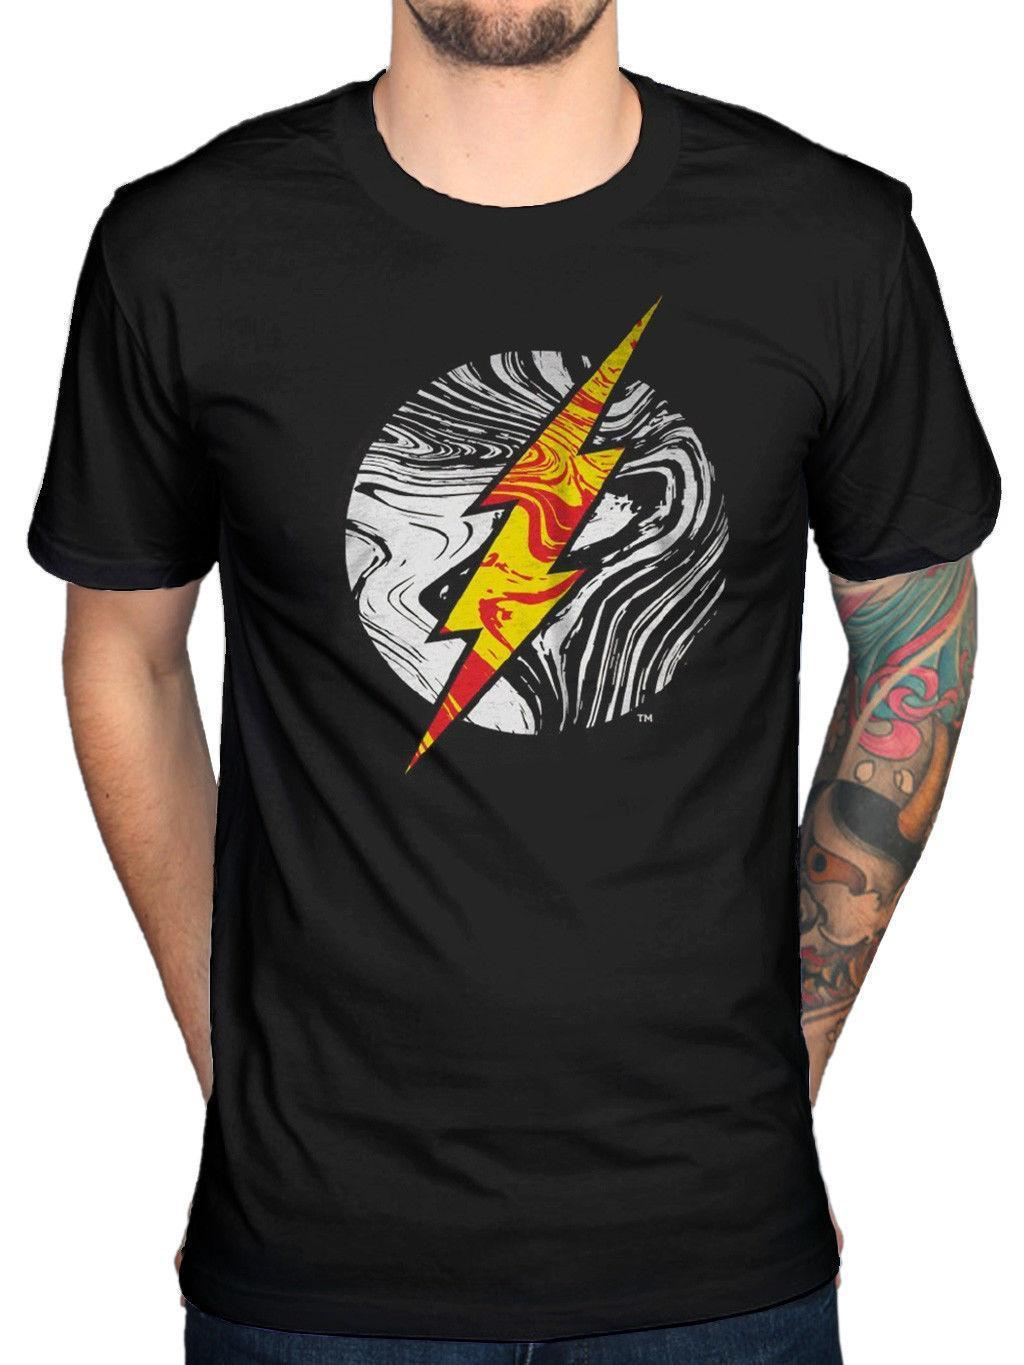 Official The Flash Molten Logo T-Shirt Enter Flashtime Lose Yourself Oggetto 9